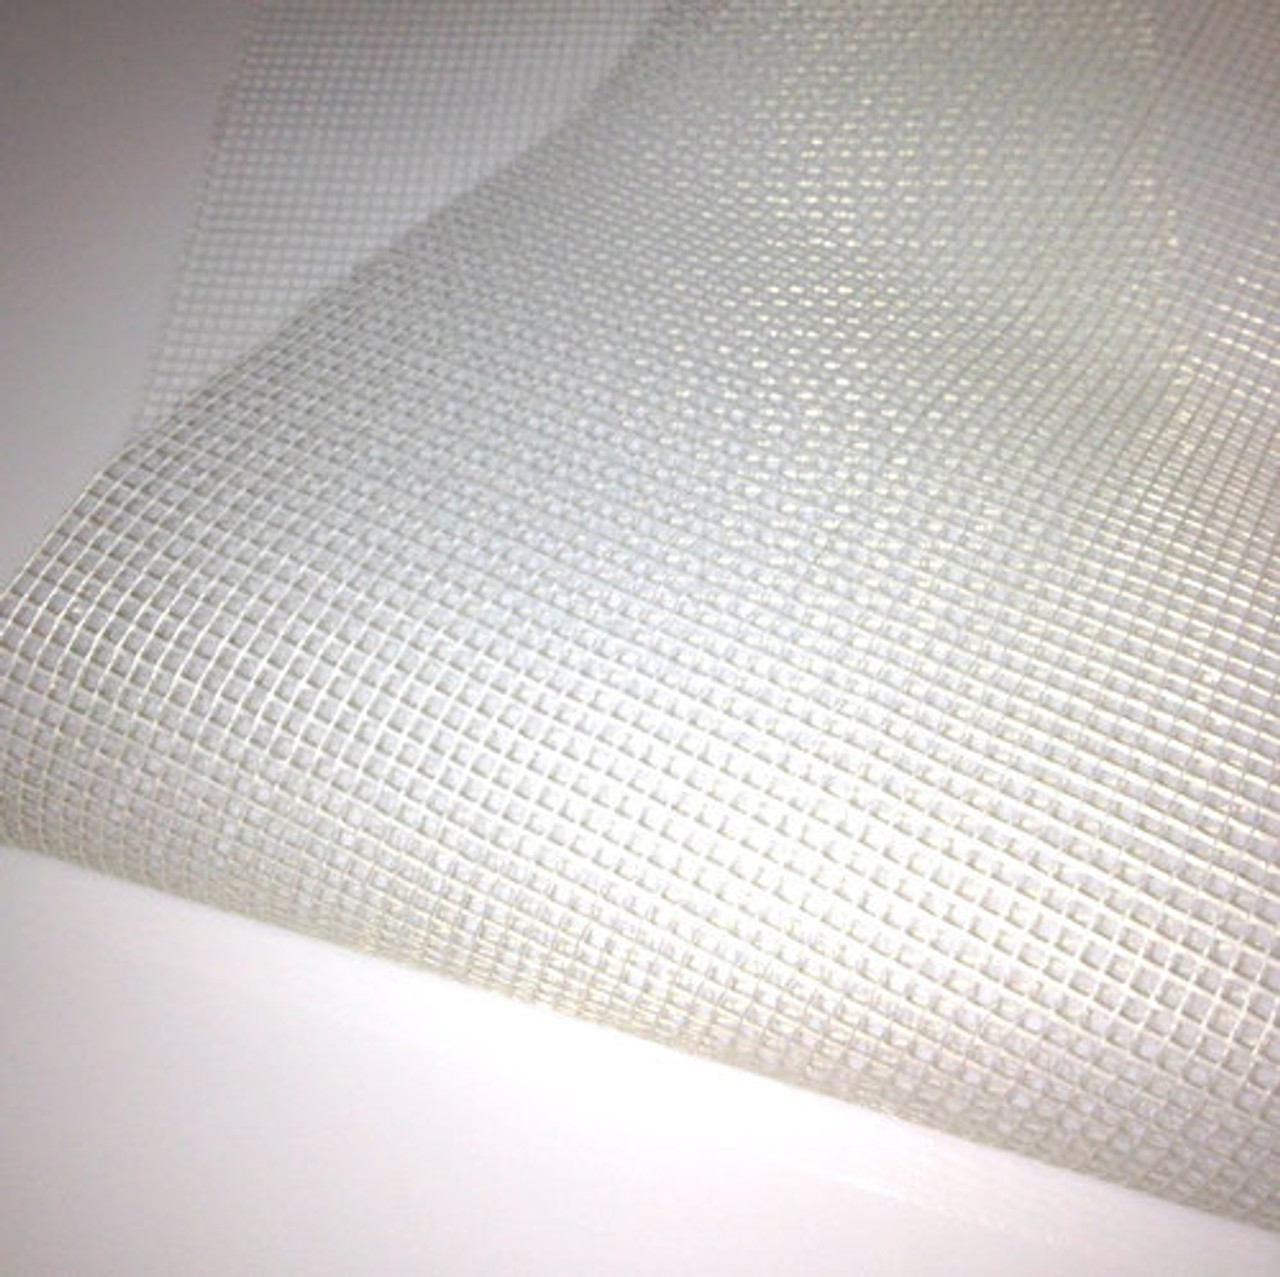 """DISCONTINUED ITEM 80% OFF:  Non-Adhesive Fiberglass Mesh for Mosaic Tiles - 150' roll (38"""" wide) (U.S. SHIPPING ONLY)"""